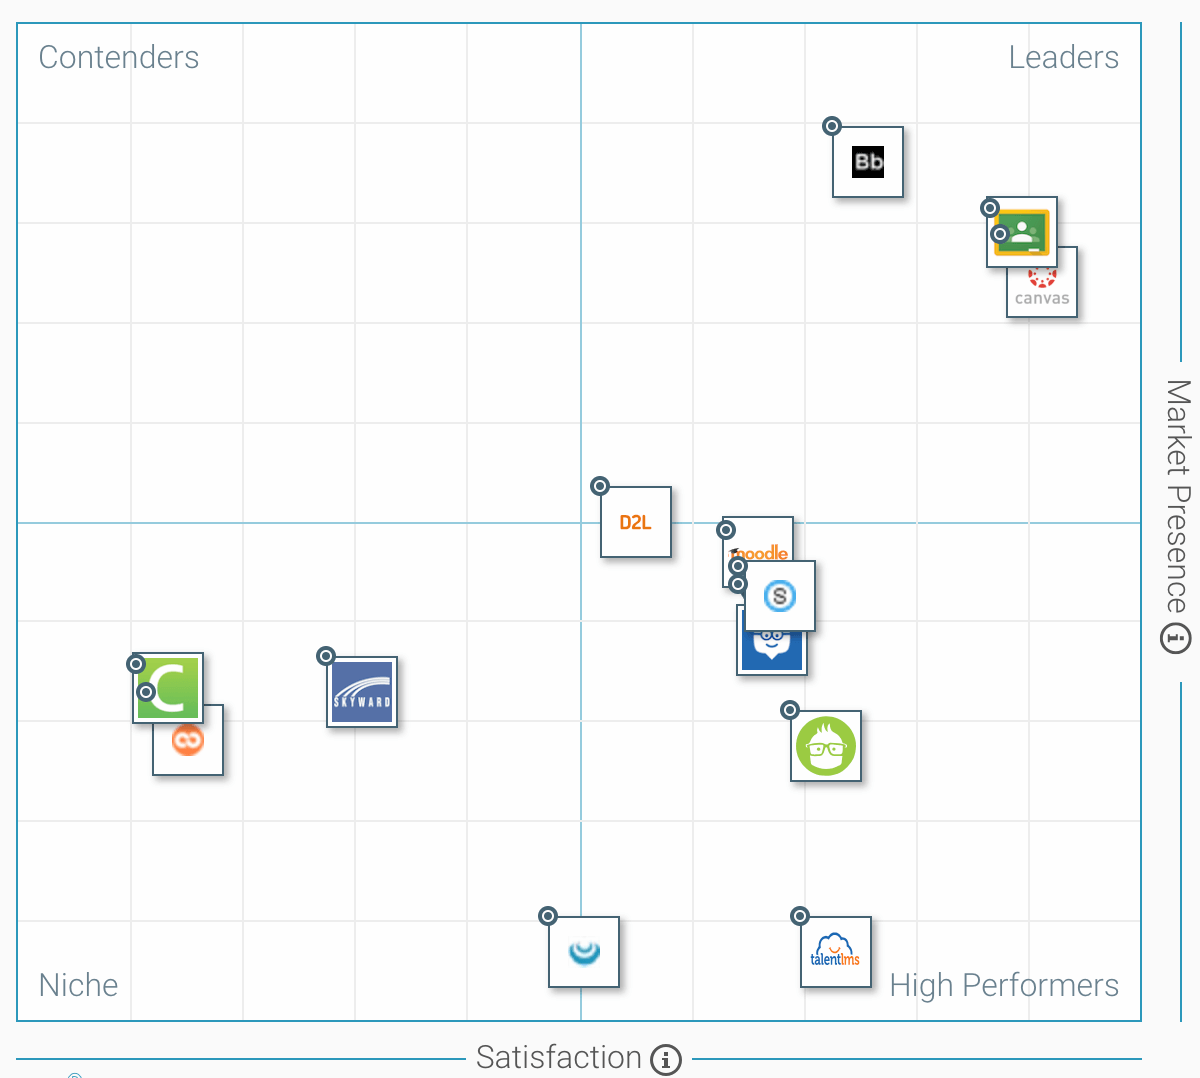 Canvas Review Chart- Top Rated LMS for Market Presence and Satisfaction